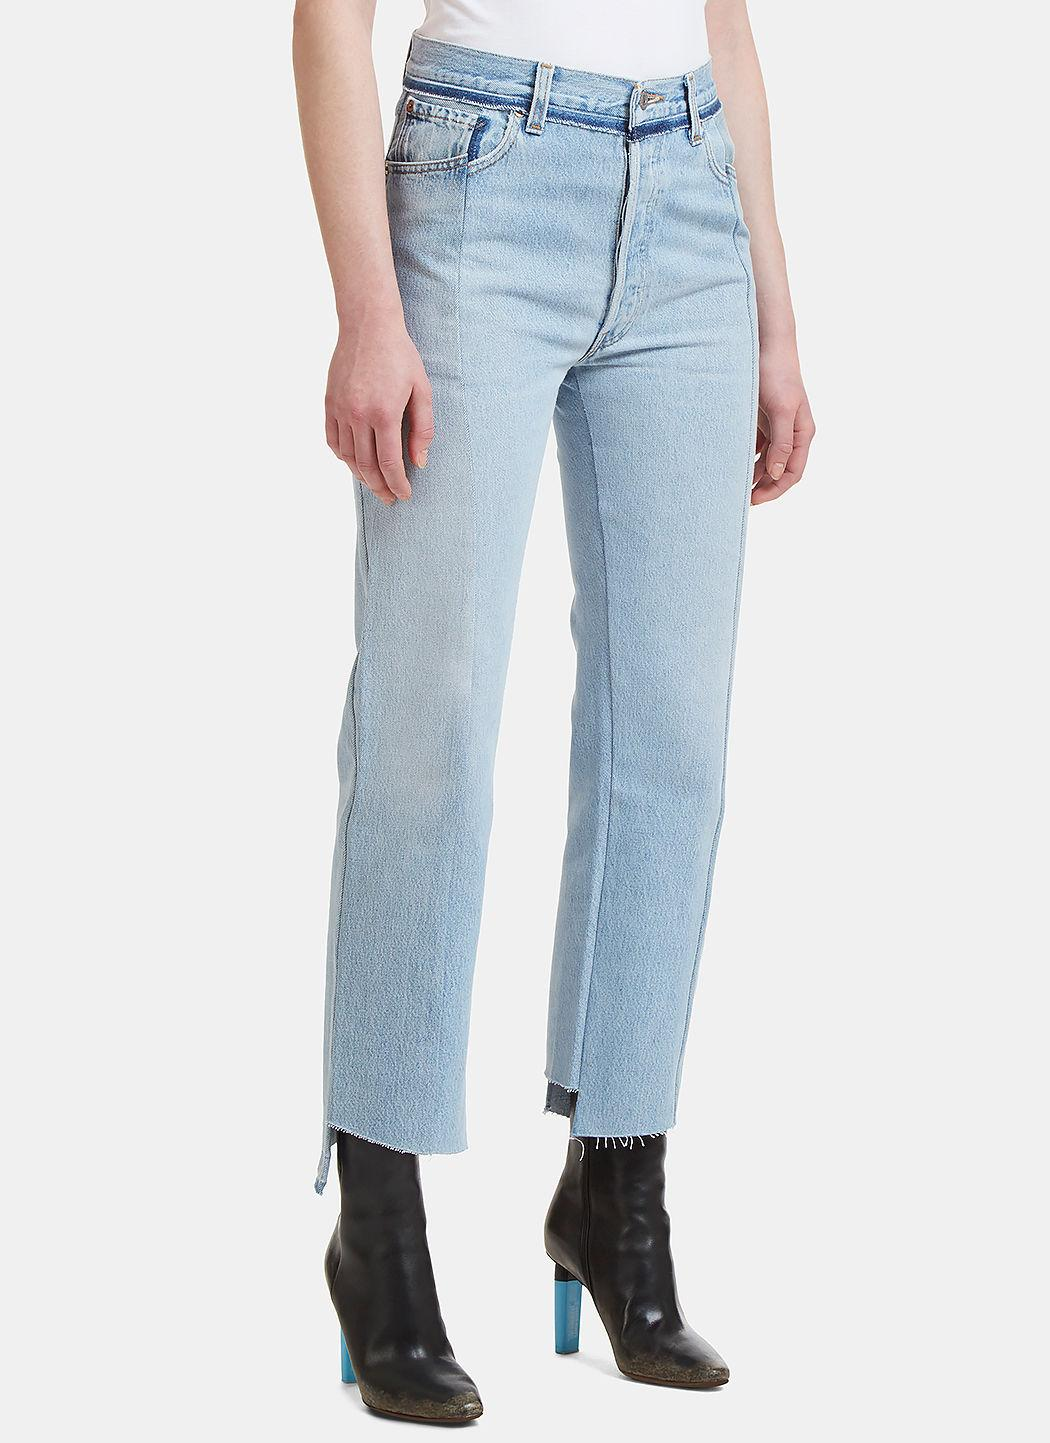 Vetements Reworked Push Up Jeans In Blue